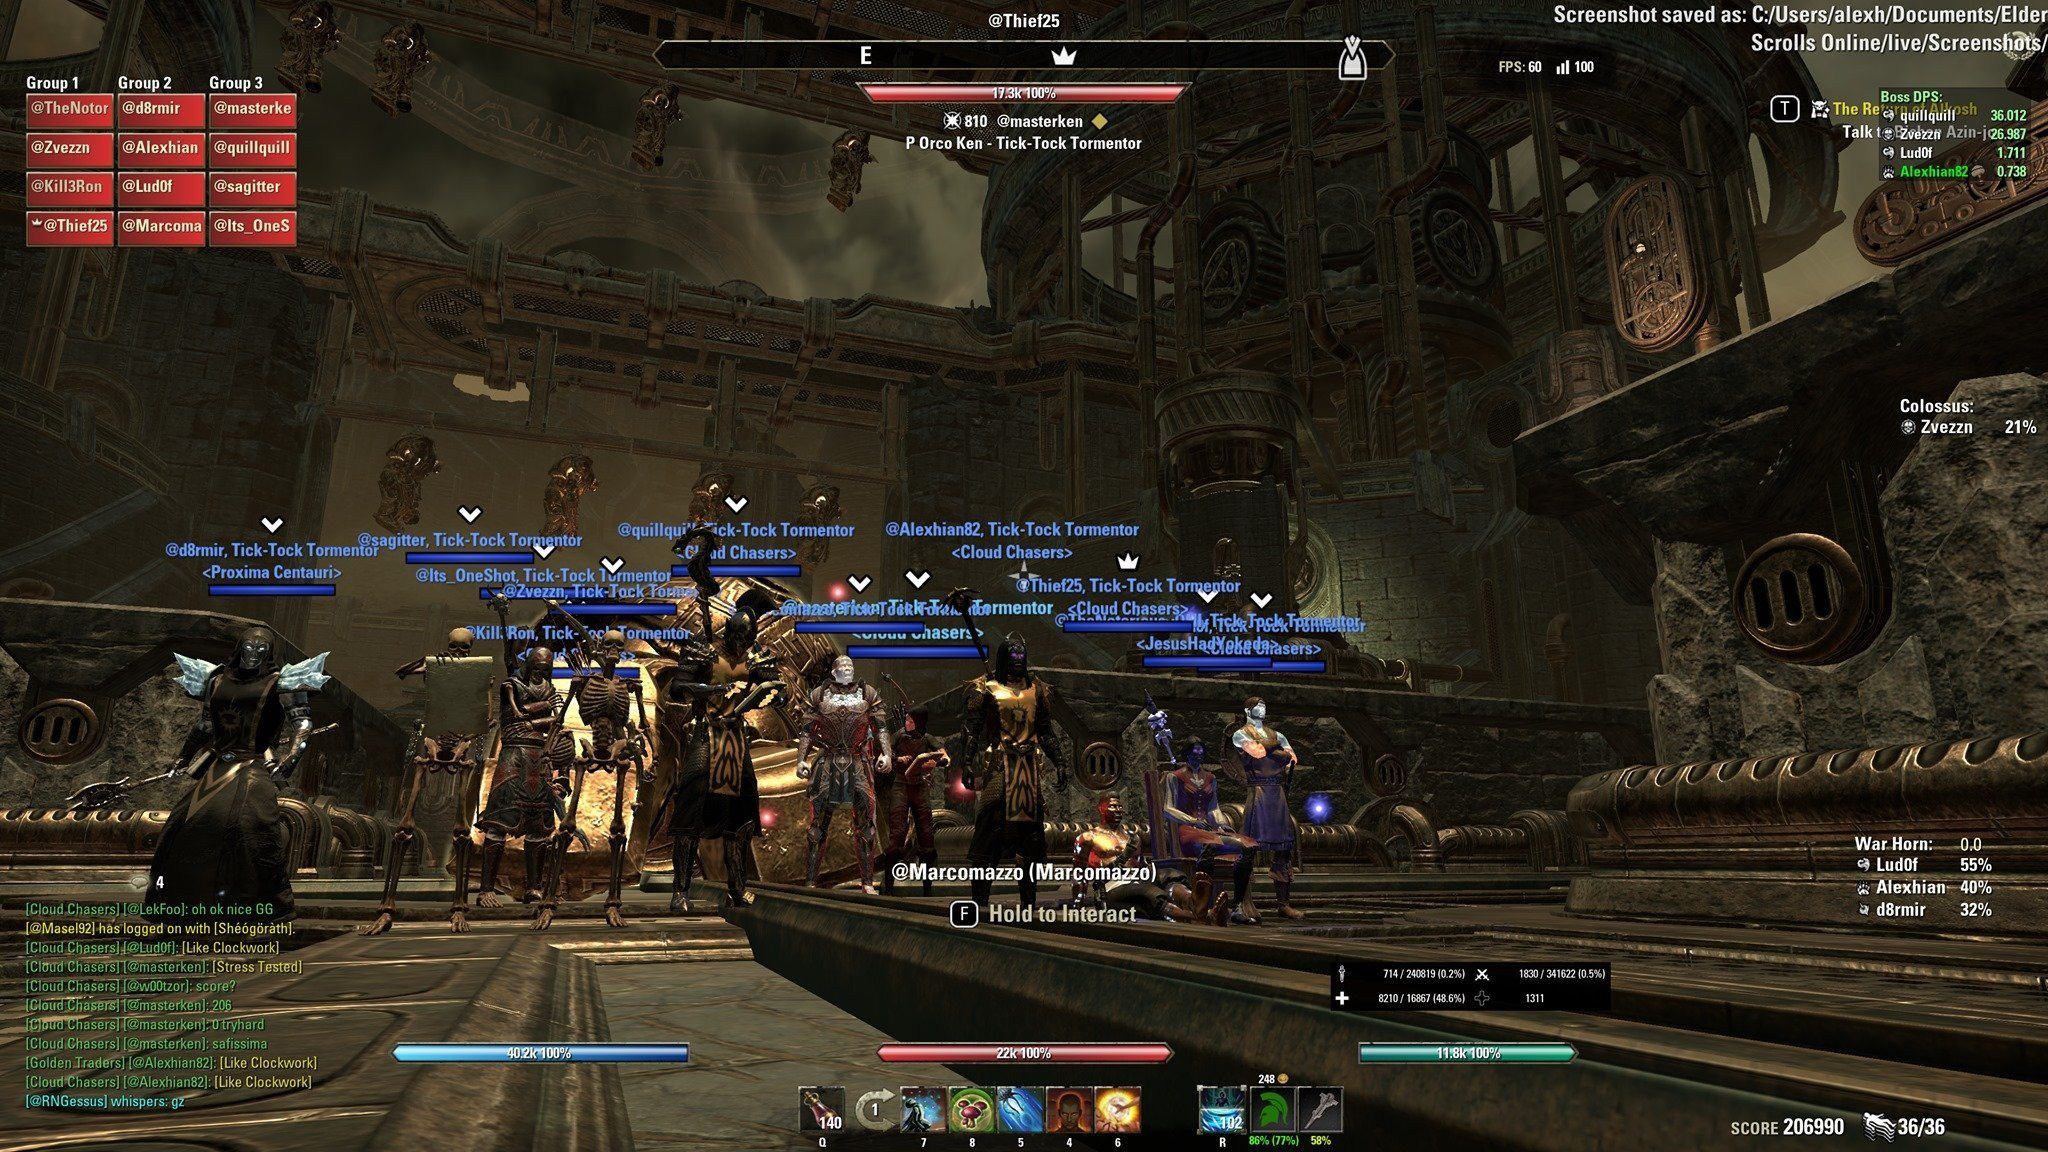 Bacheca Gilde Cloud Chasers The Elder Scrolls Online ESO